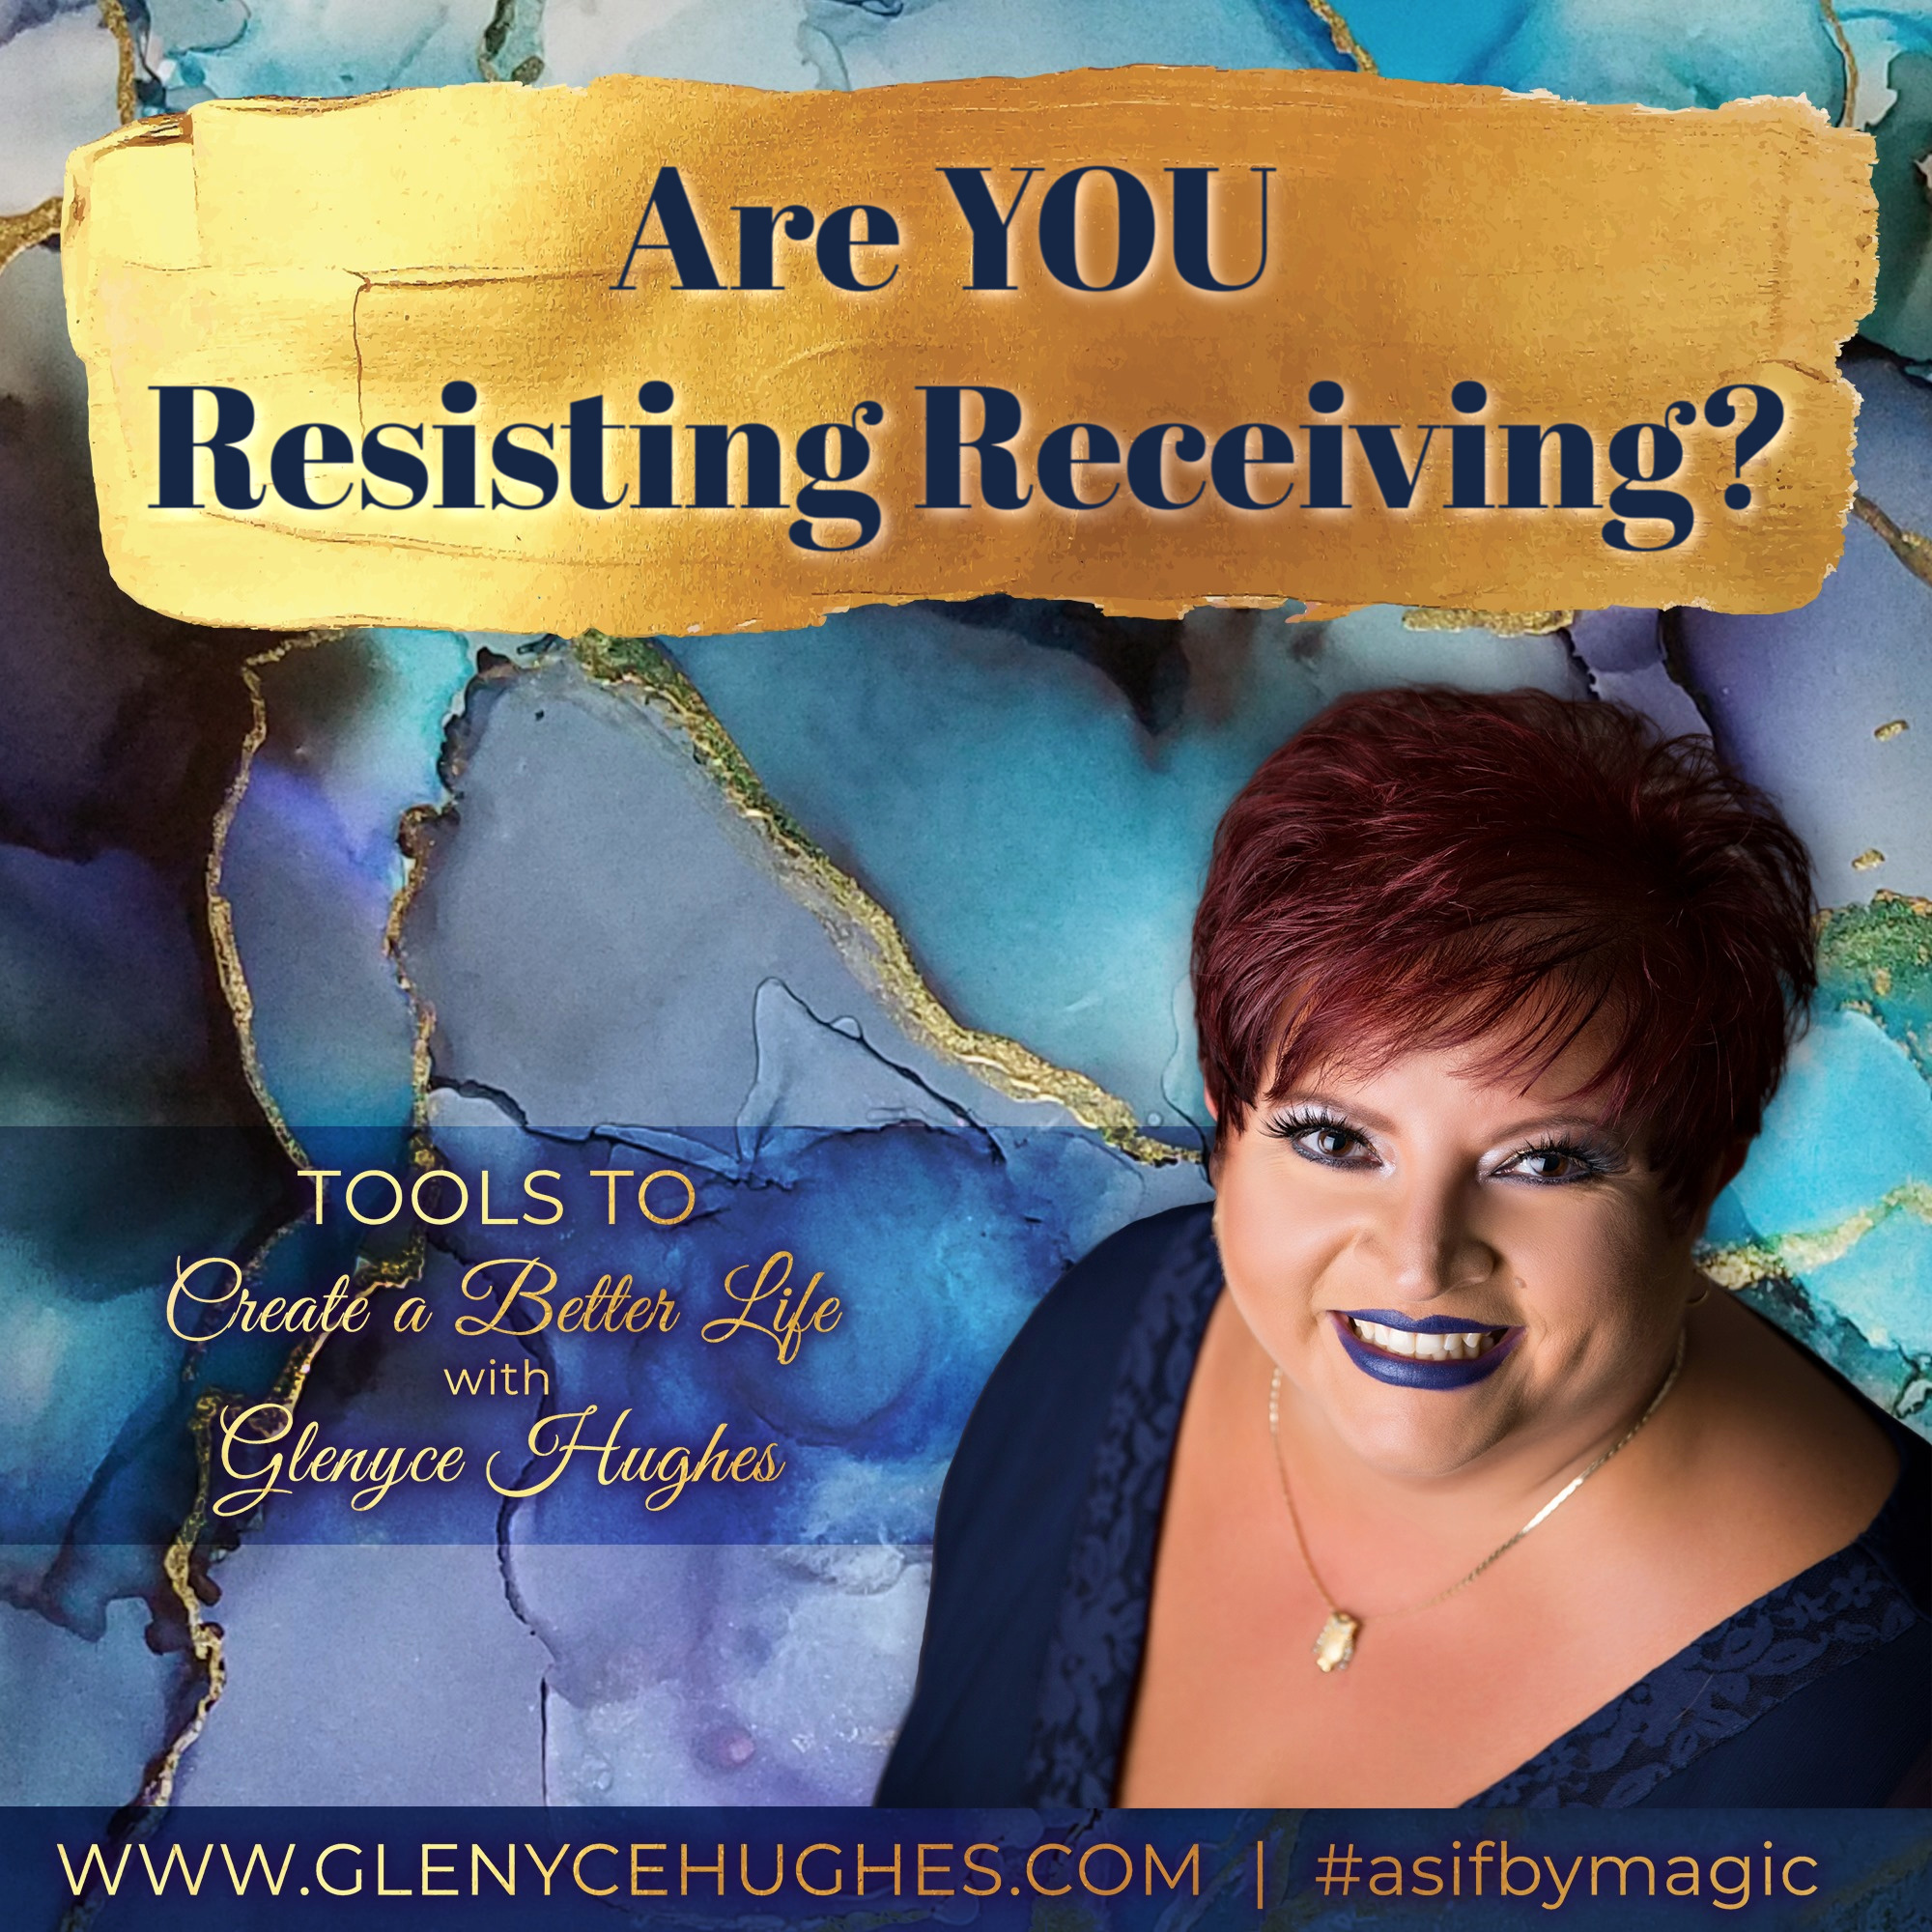 Are You Resisting Receiving?